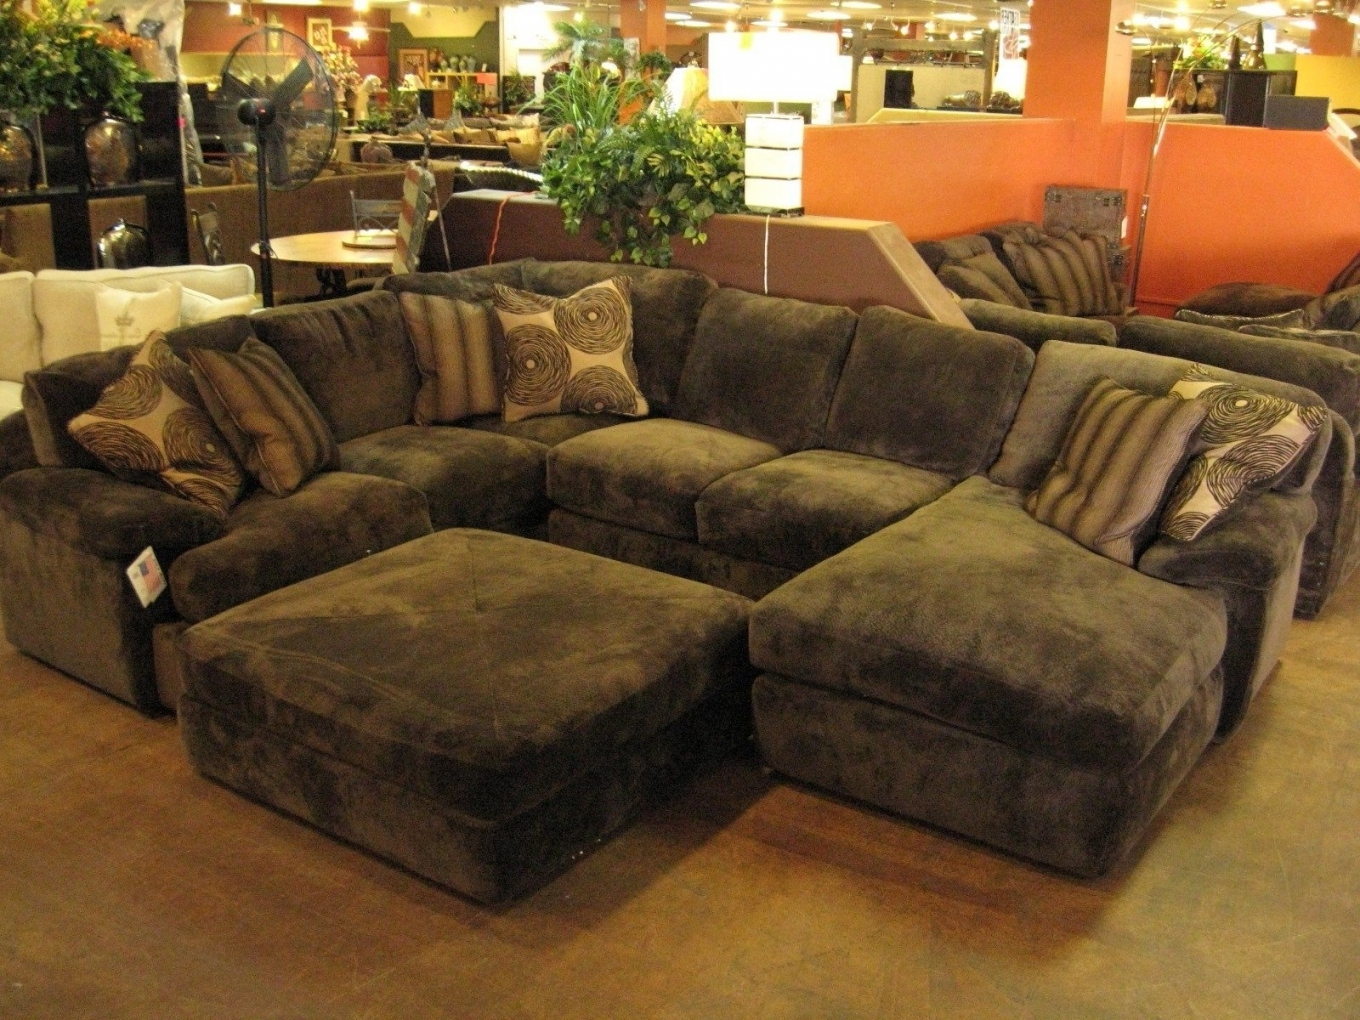 Famous Best Comfy Sectional Sofas 18 For Your Sofas And Couches Ideas Pertaining To Comfy Sectional Sofas (View 7 of 20)